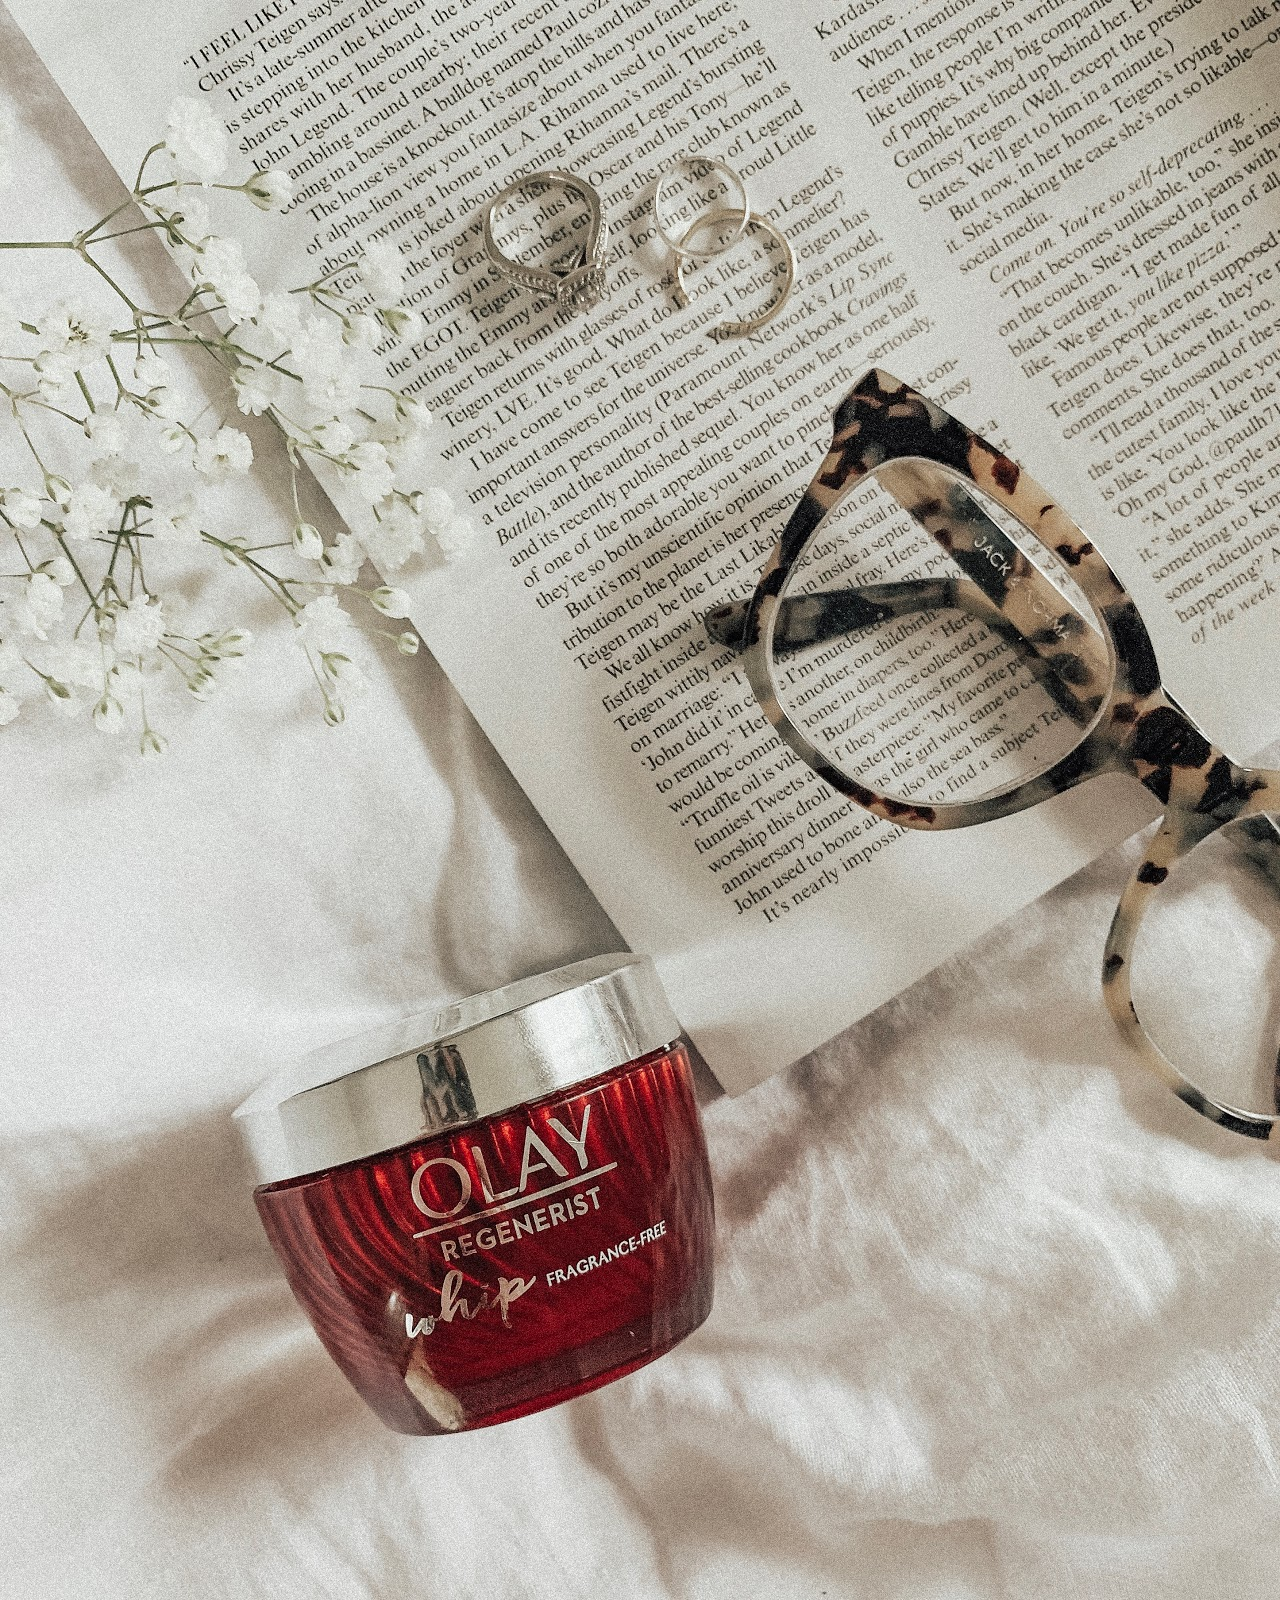 calming nighttime rituals // @OlayUS Regenerist Whip Fragrance-Free